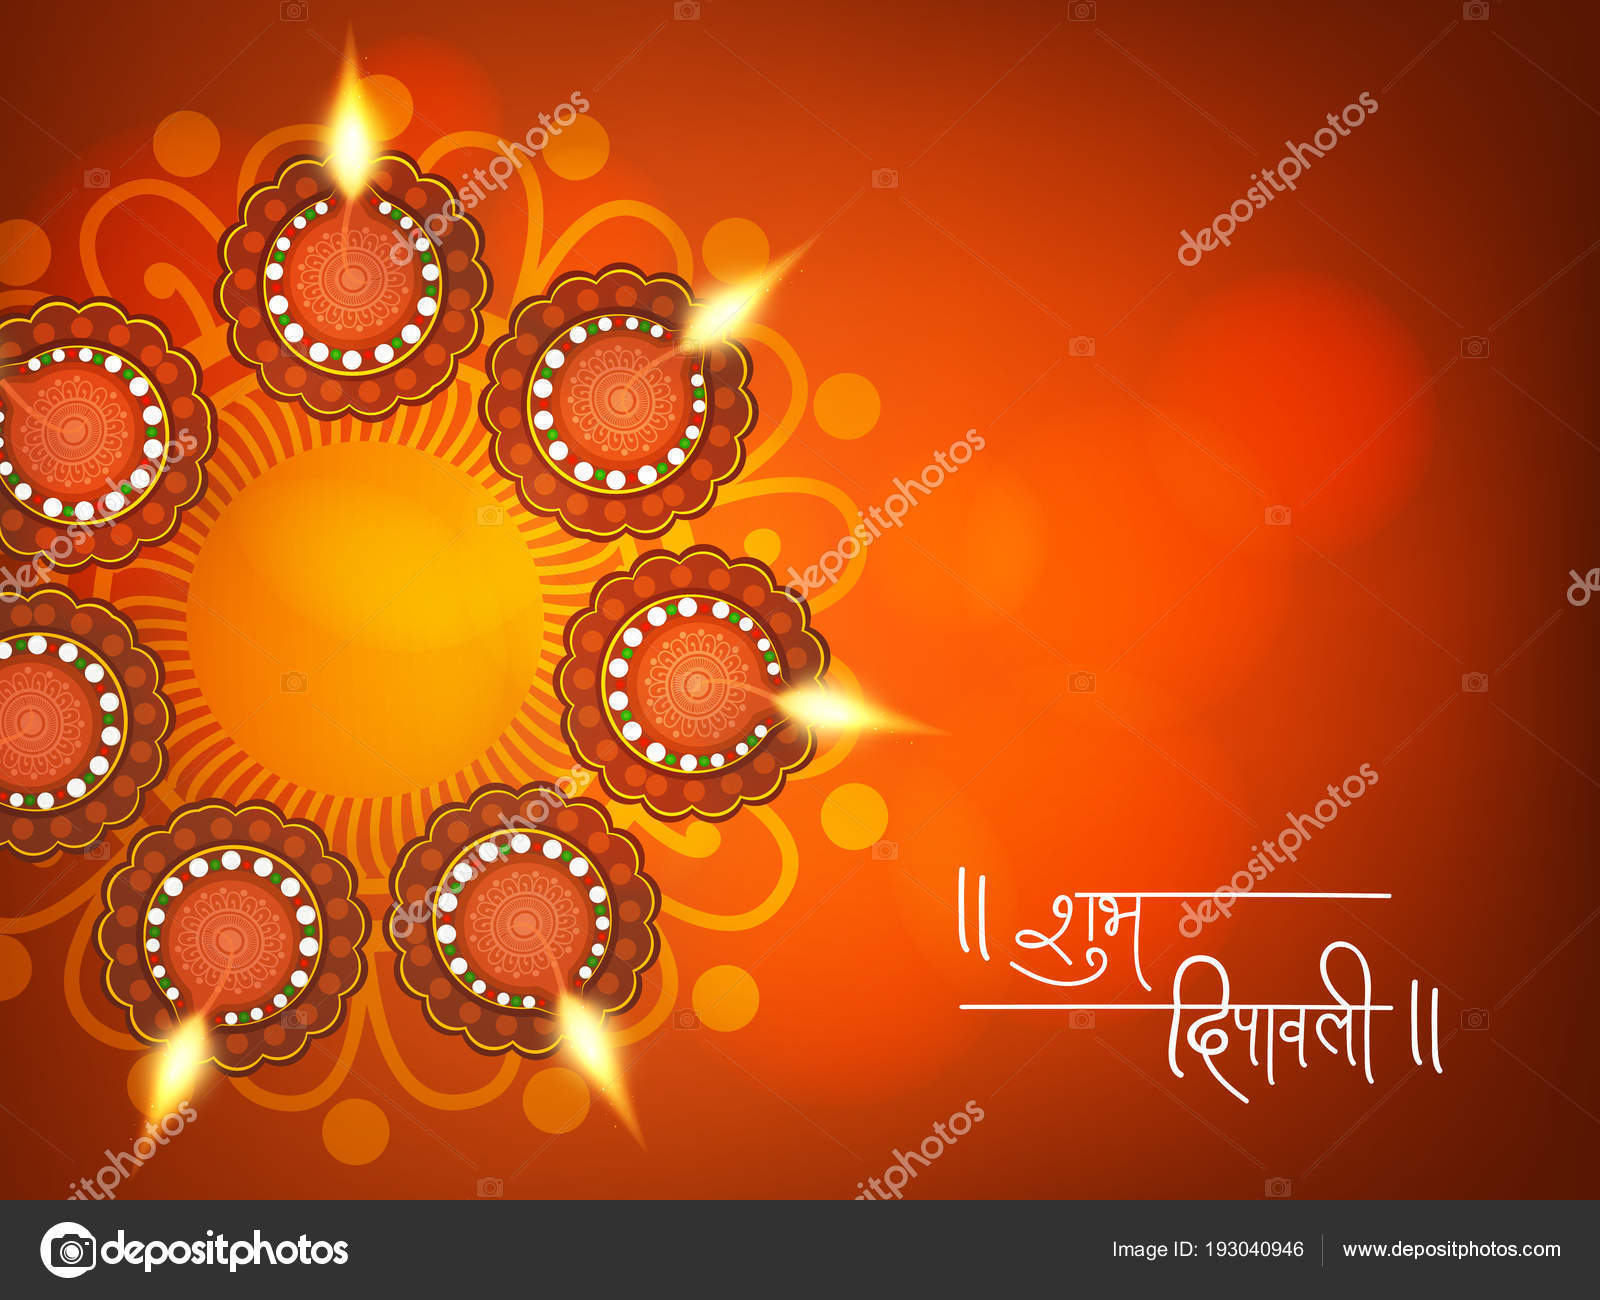 Happy diwali celebration hindi text shubh diwali greeting card happy diwali celebration hindi text shubh diwali greeting card stock vector m4hsunfo